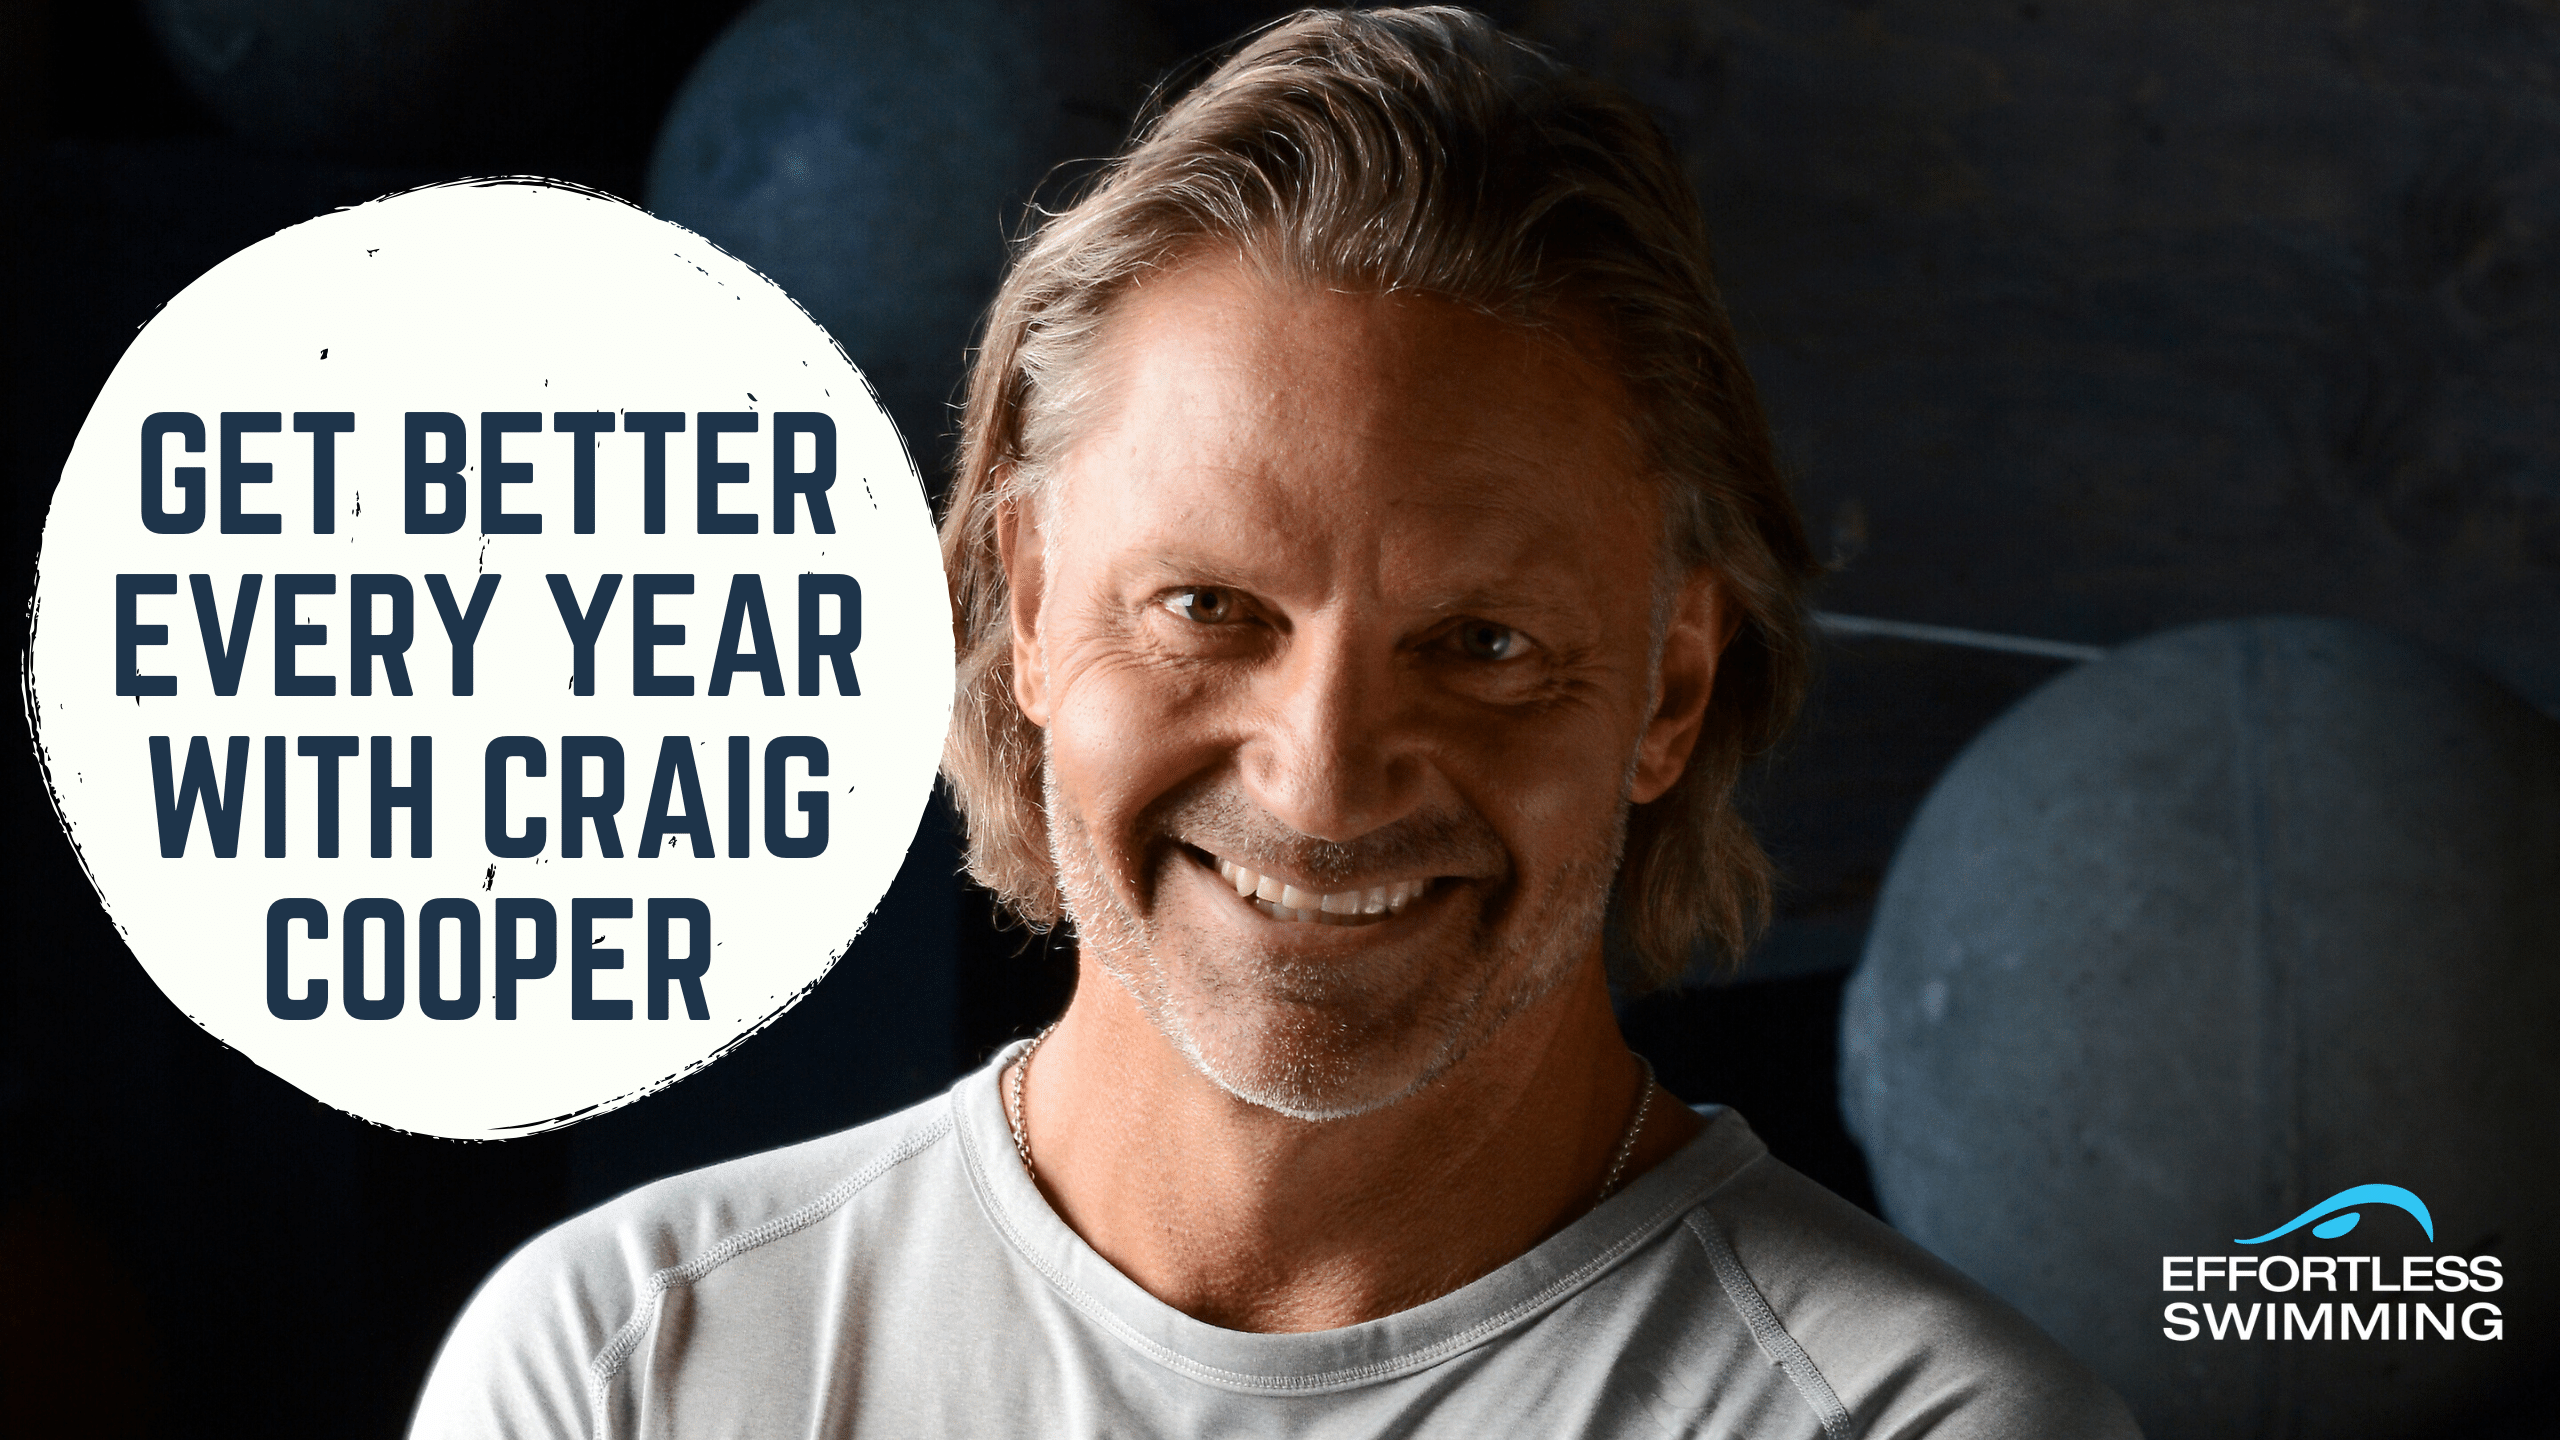 Get Better Every Year with Craig Cooper